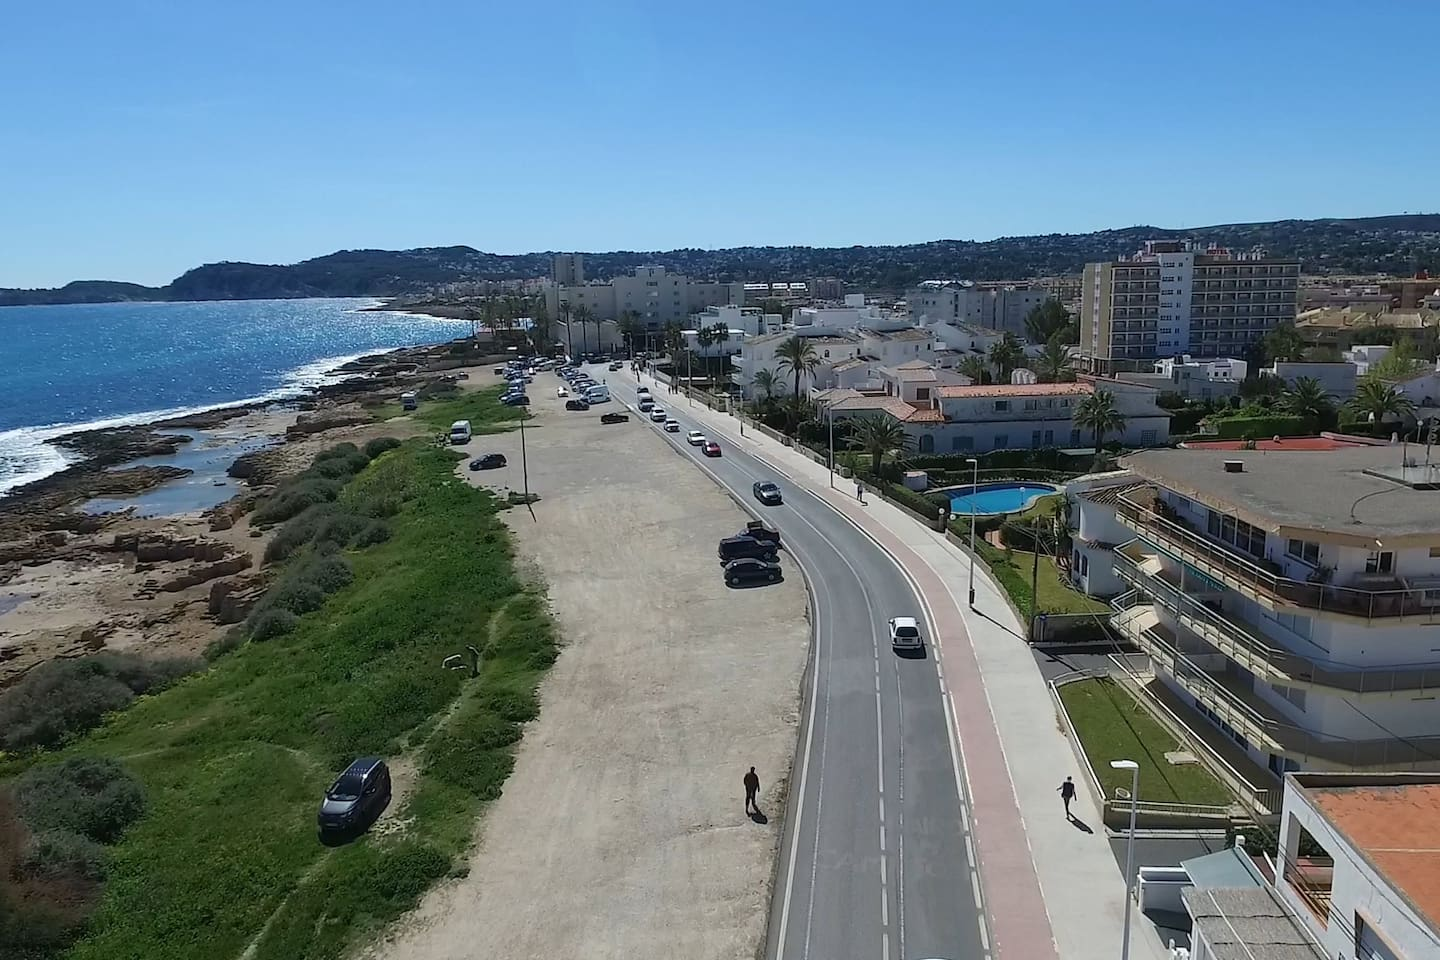 El Cisne Javea - Avenida del Mediterraneo - Newly refurbished first line apartment with direct sea views from balcony and 4 minute walk to Arenal